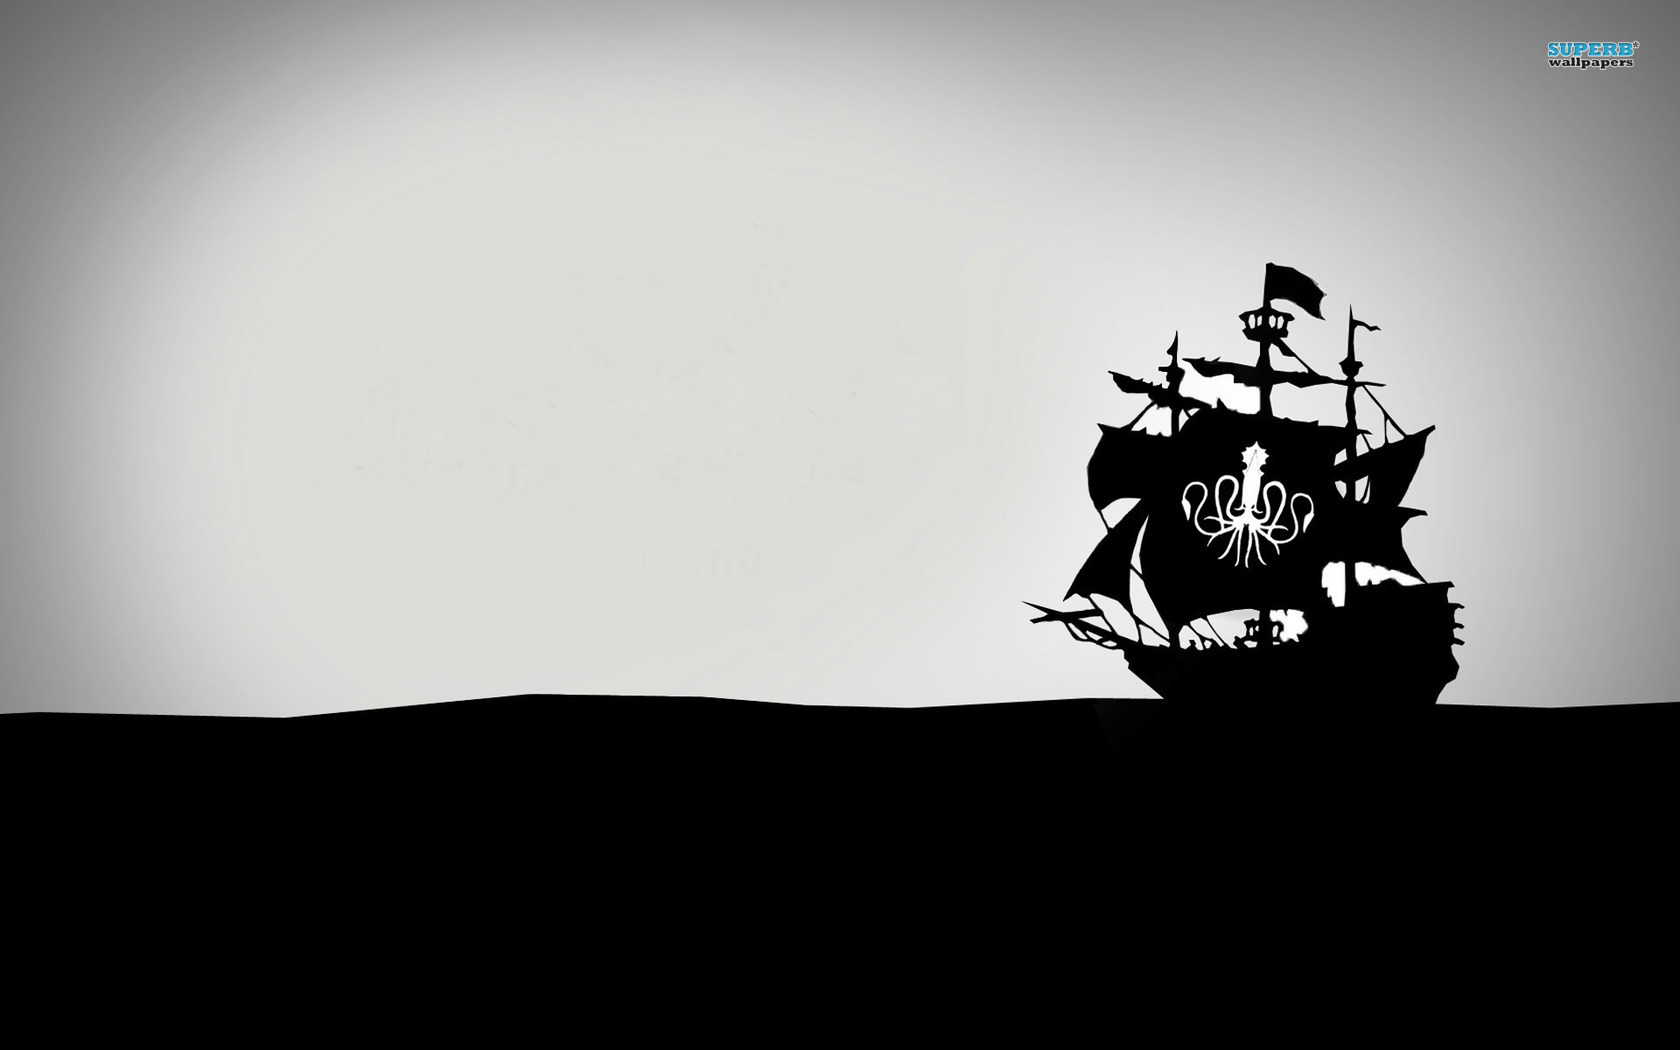 Pirate ship wallpaper - Vector wallpapers